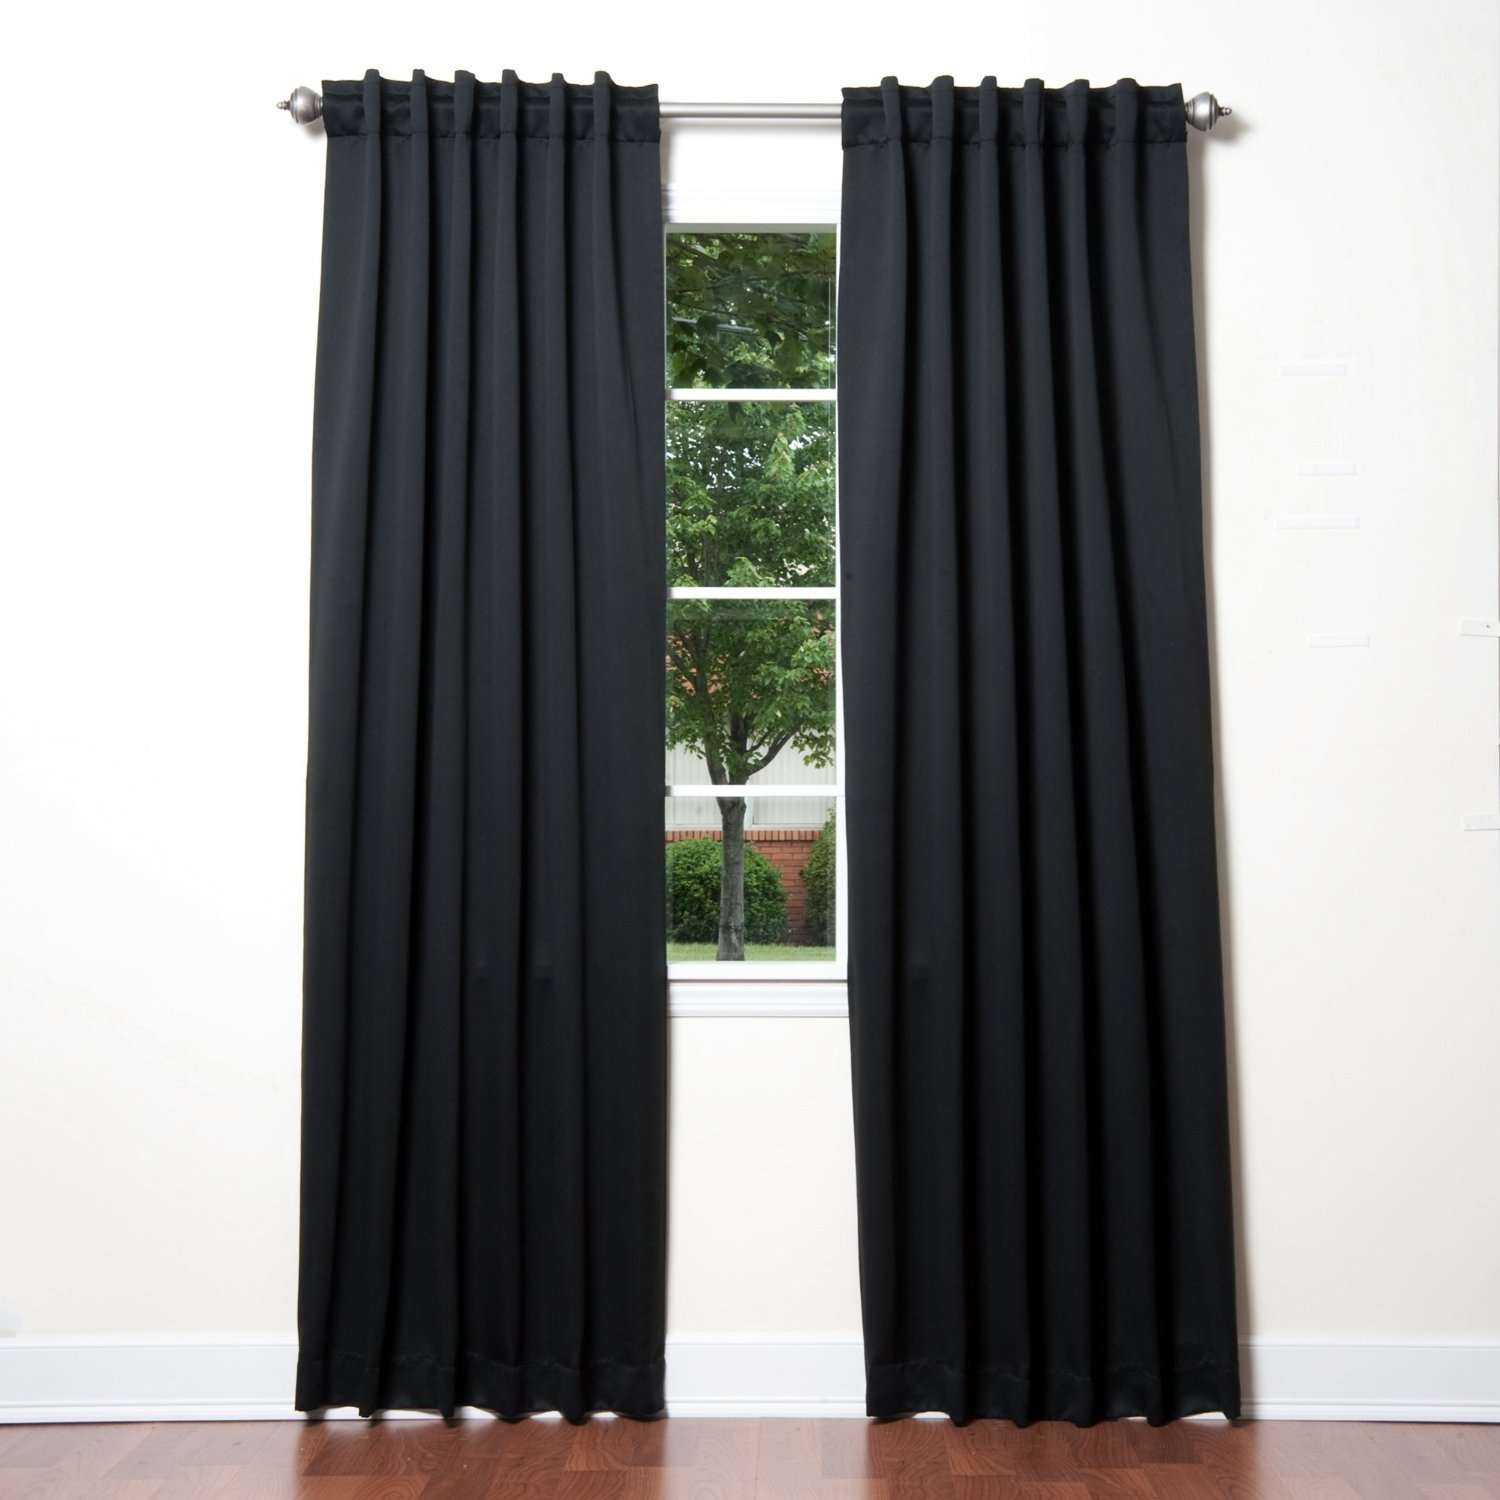 Featured Image of Thermal And Blackout Curtains